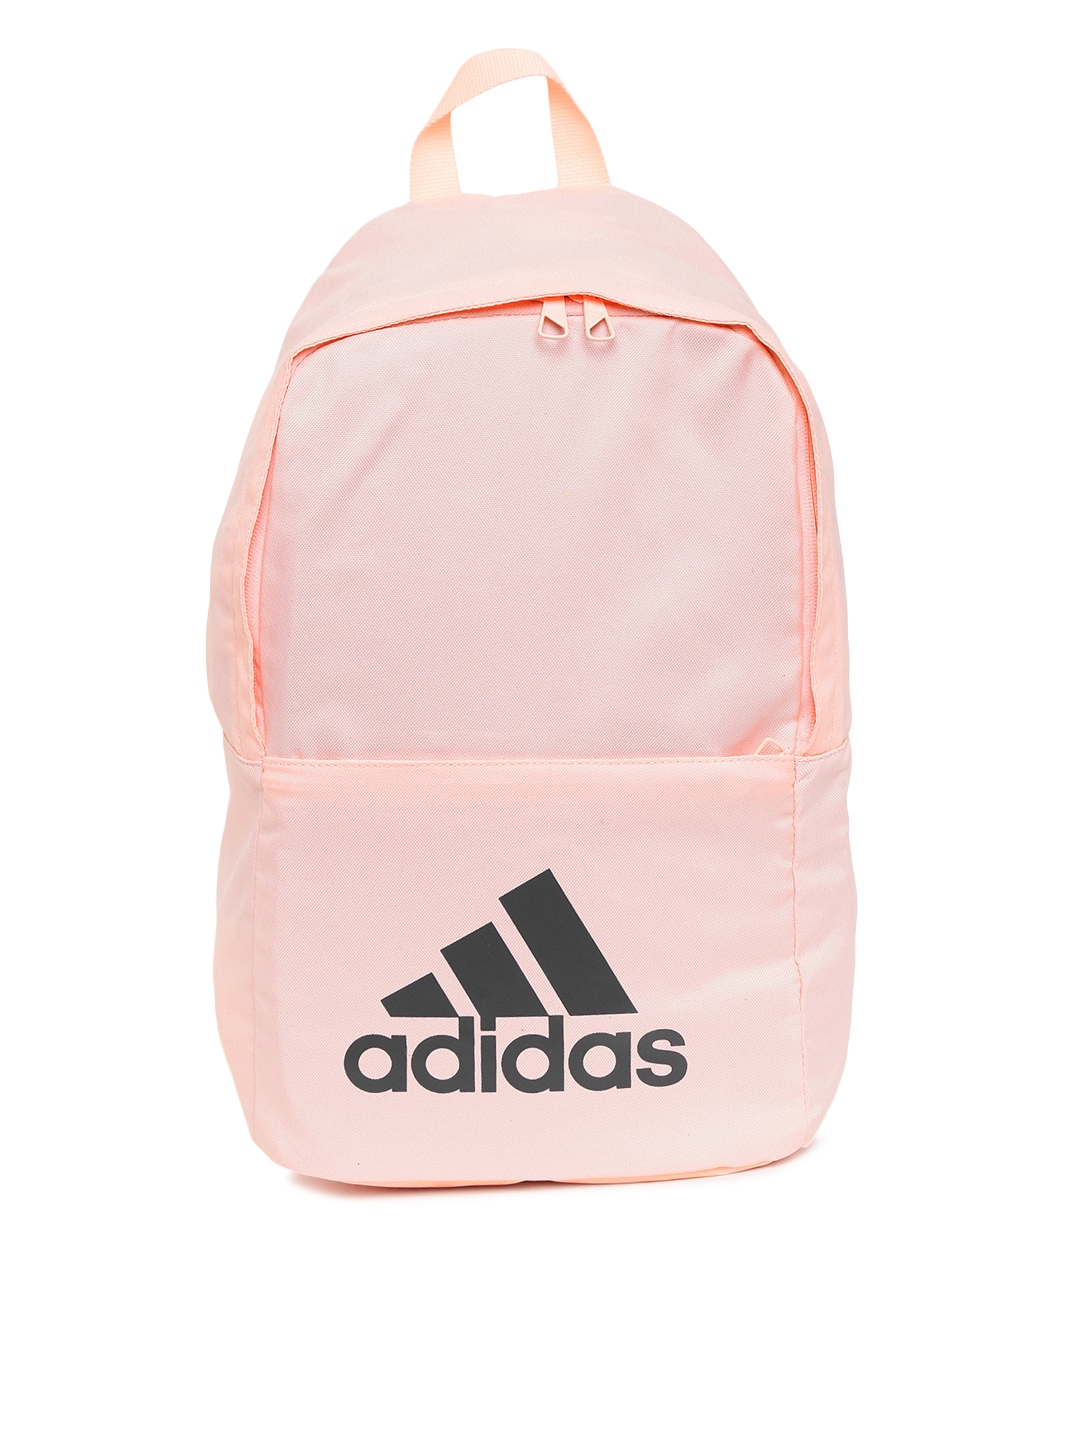 0bf1e572aac0 Wwe Adidas Backpacks Skirts Tshirts - Buy Wwe Adidas Backpacks Skirts  Tshirts online in India